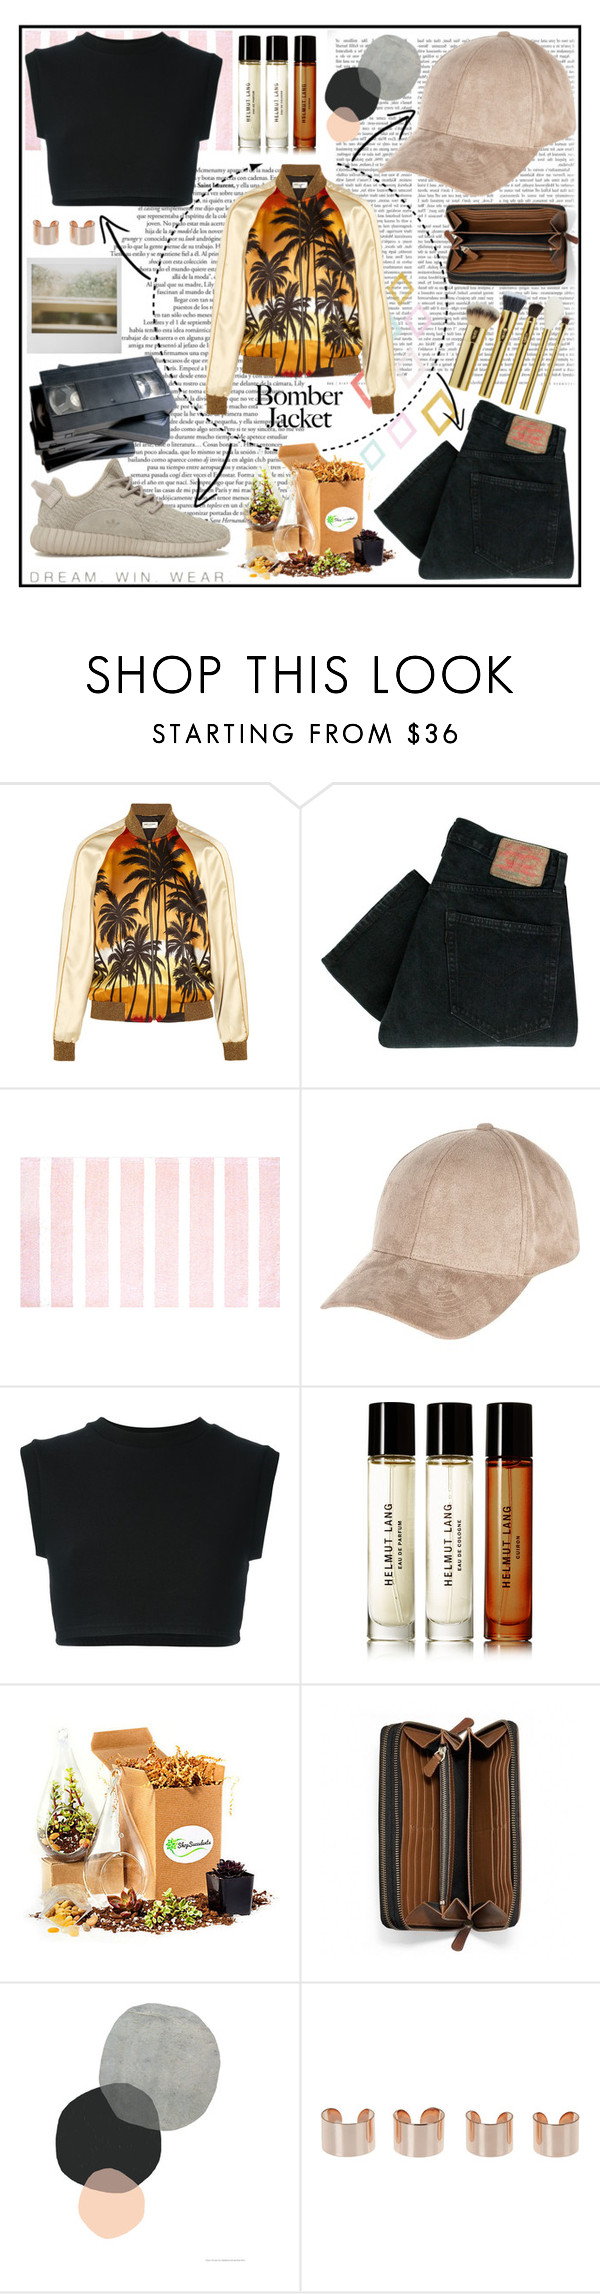 """#183"" by dana-bullsfan ❤ liked on Polyvore featuring Yves Saint Laurent, Levi's, Shabby Chic, River Island, adidas Originals, Helmut Lang, Shop Succulents, Polaroid, Coach and Maison Margiela"